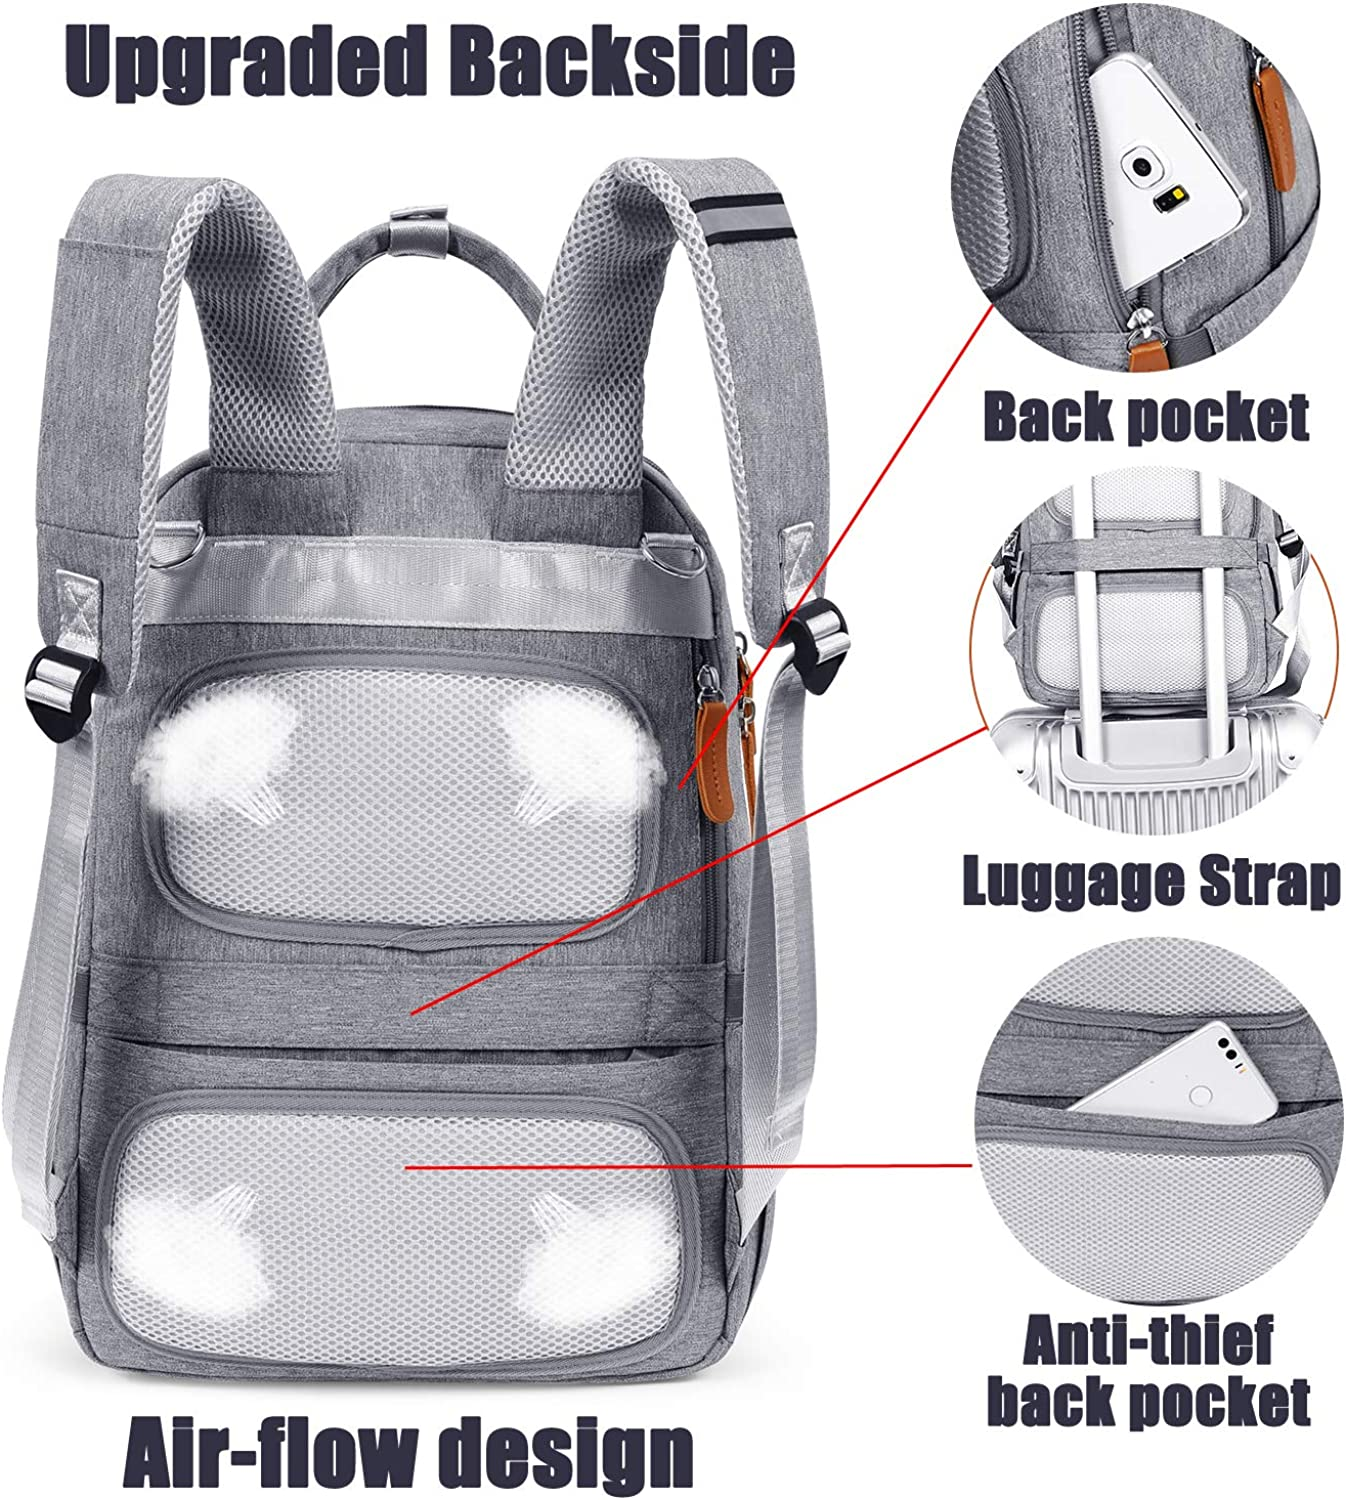 Luggage Strap for Boys Girls Women Men 15 inch,Grey UtoteBag Diaper Bag Backpack Anti-Thief Maternity Baby Nappy Bag Multifunction Travel Backpack with Laptop Pocket